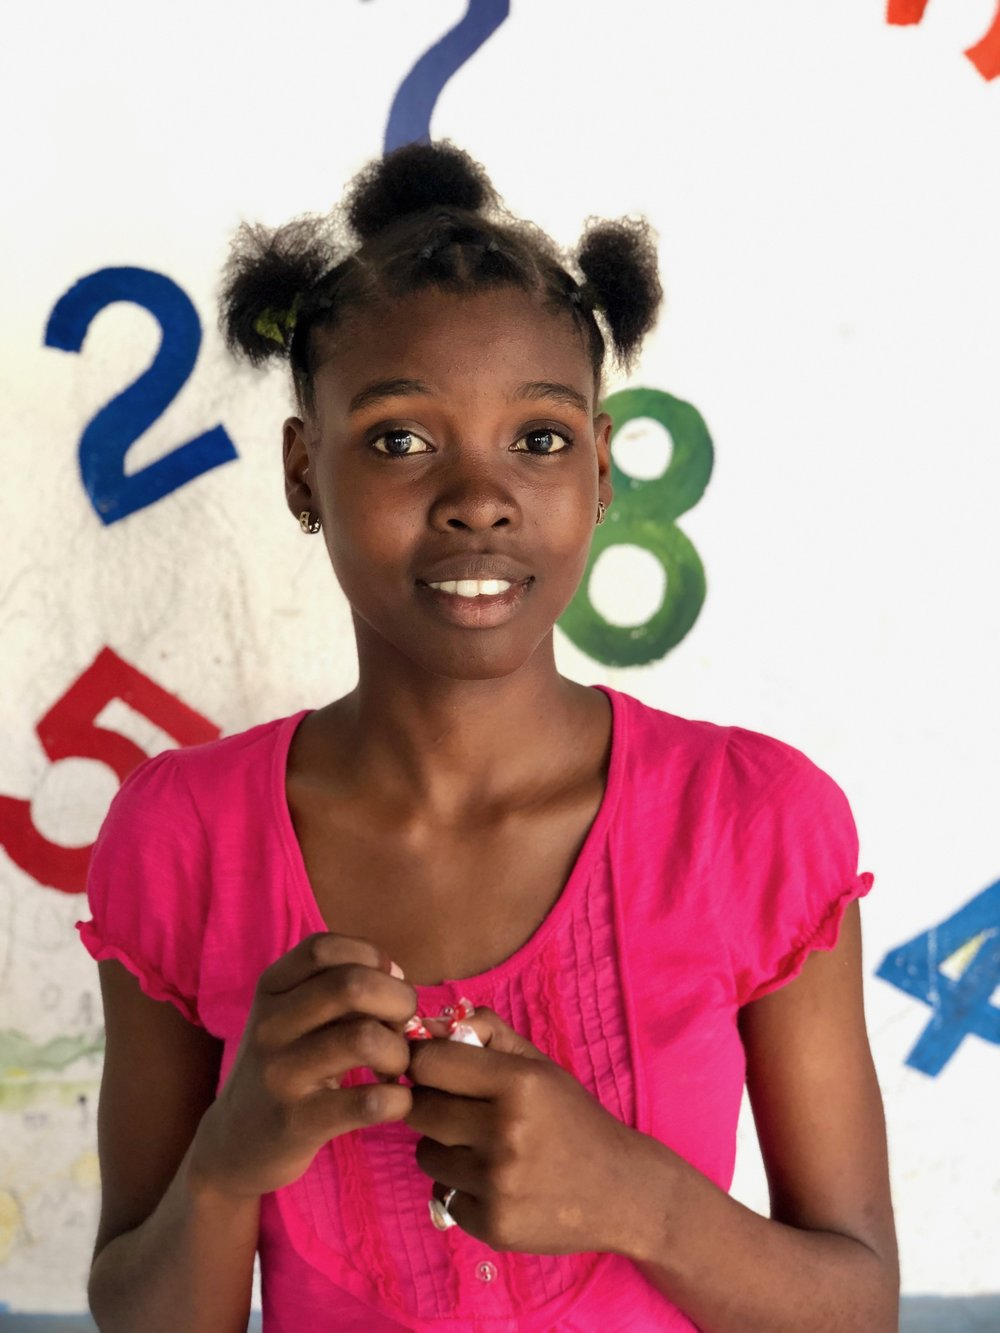 Tuition - Each child receives $100.00 for tuition at an elementary, secondary, or high school. (This amount can include, a uniform and/or immunizations, if needed. Every dollar you give us goes directly to your child's education.